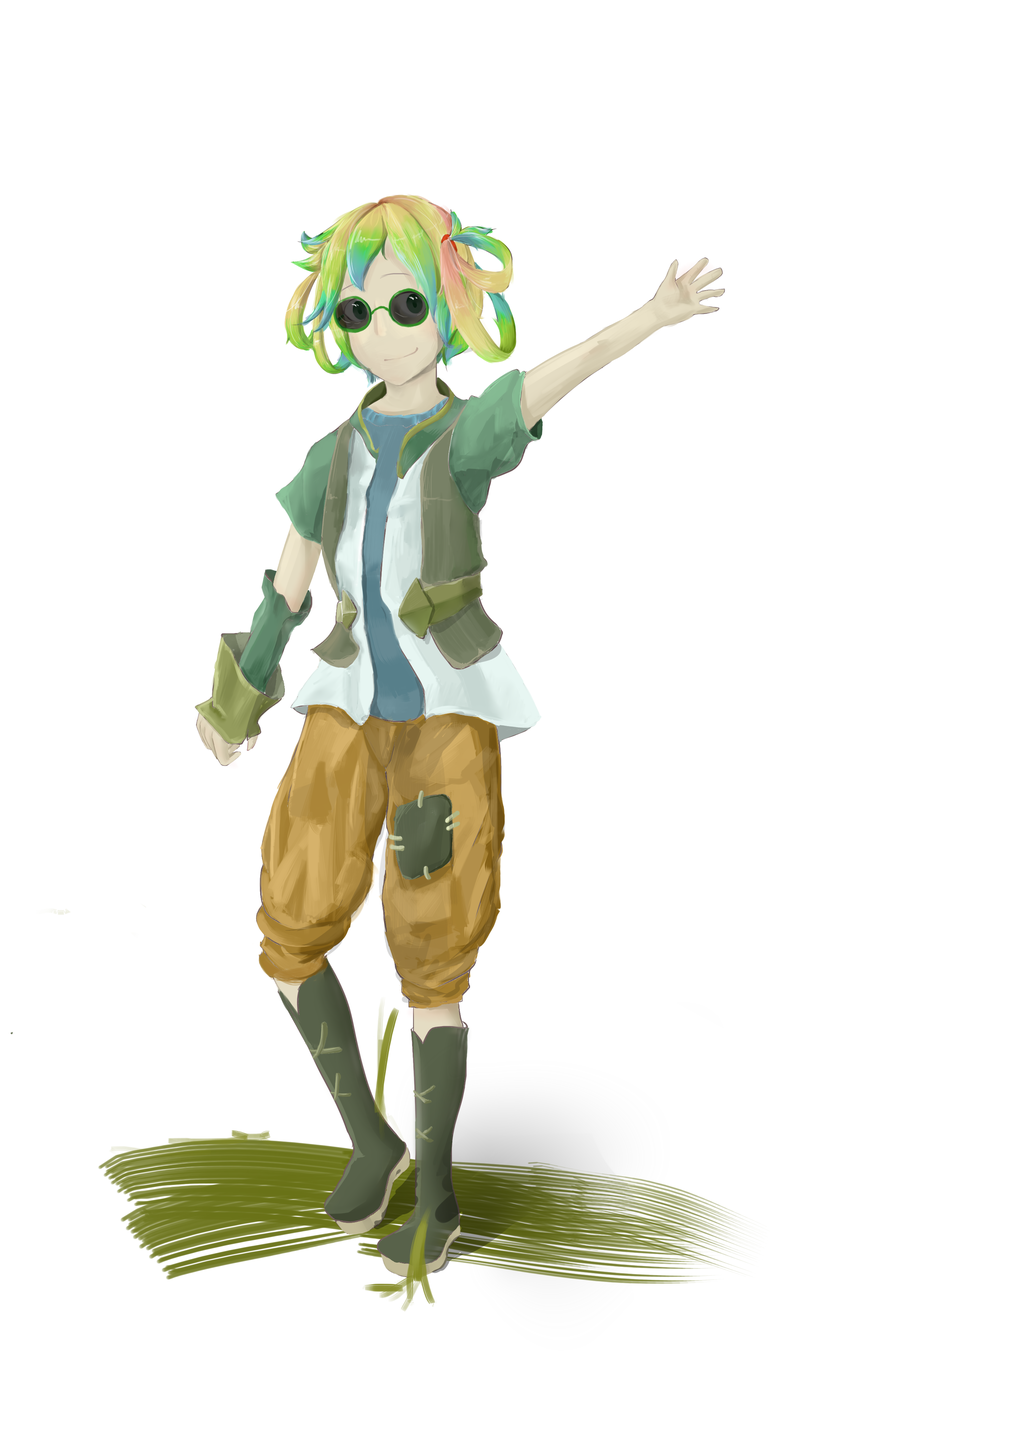 _yonder_tccc_looped_ponytails_and_spectrum_shampoo_by_lingyan0-dblgngn.png